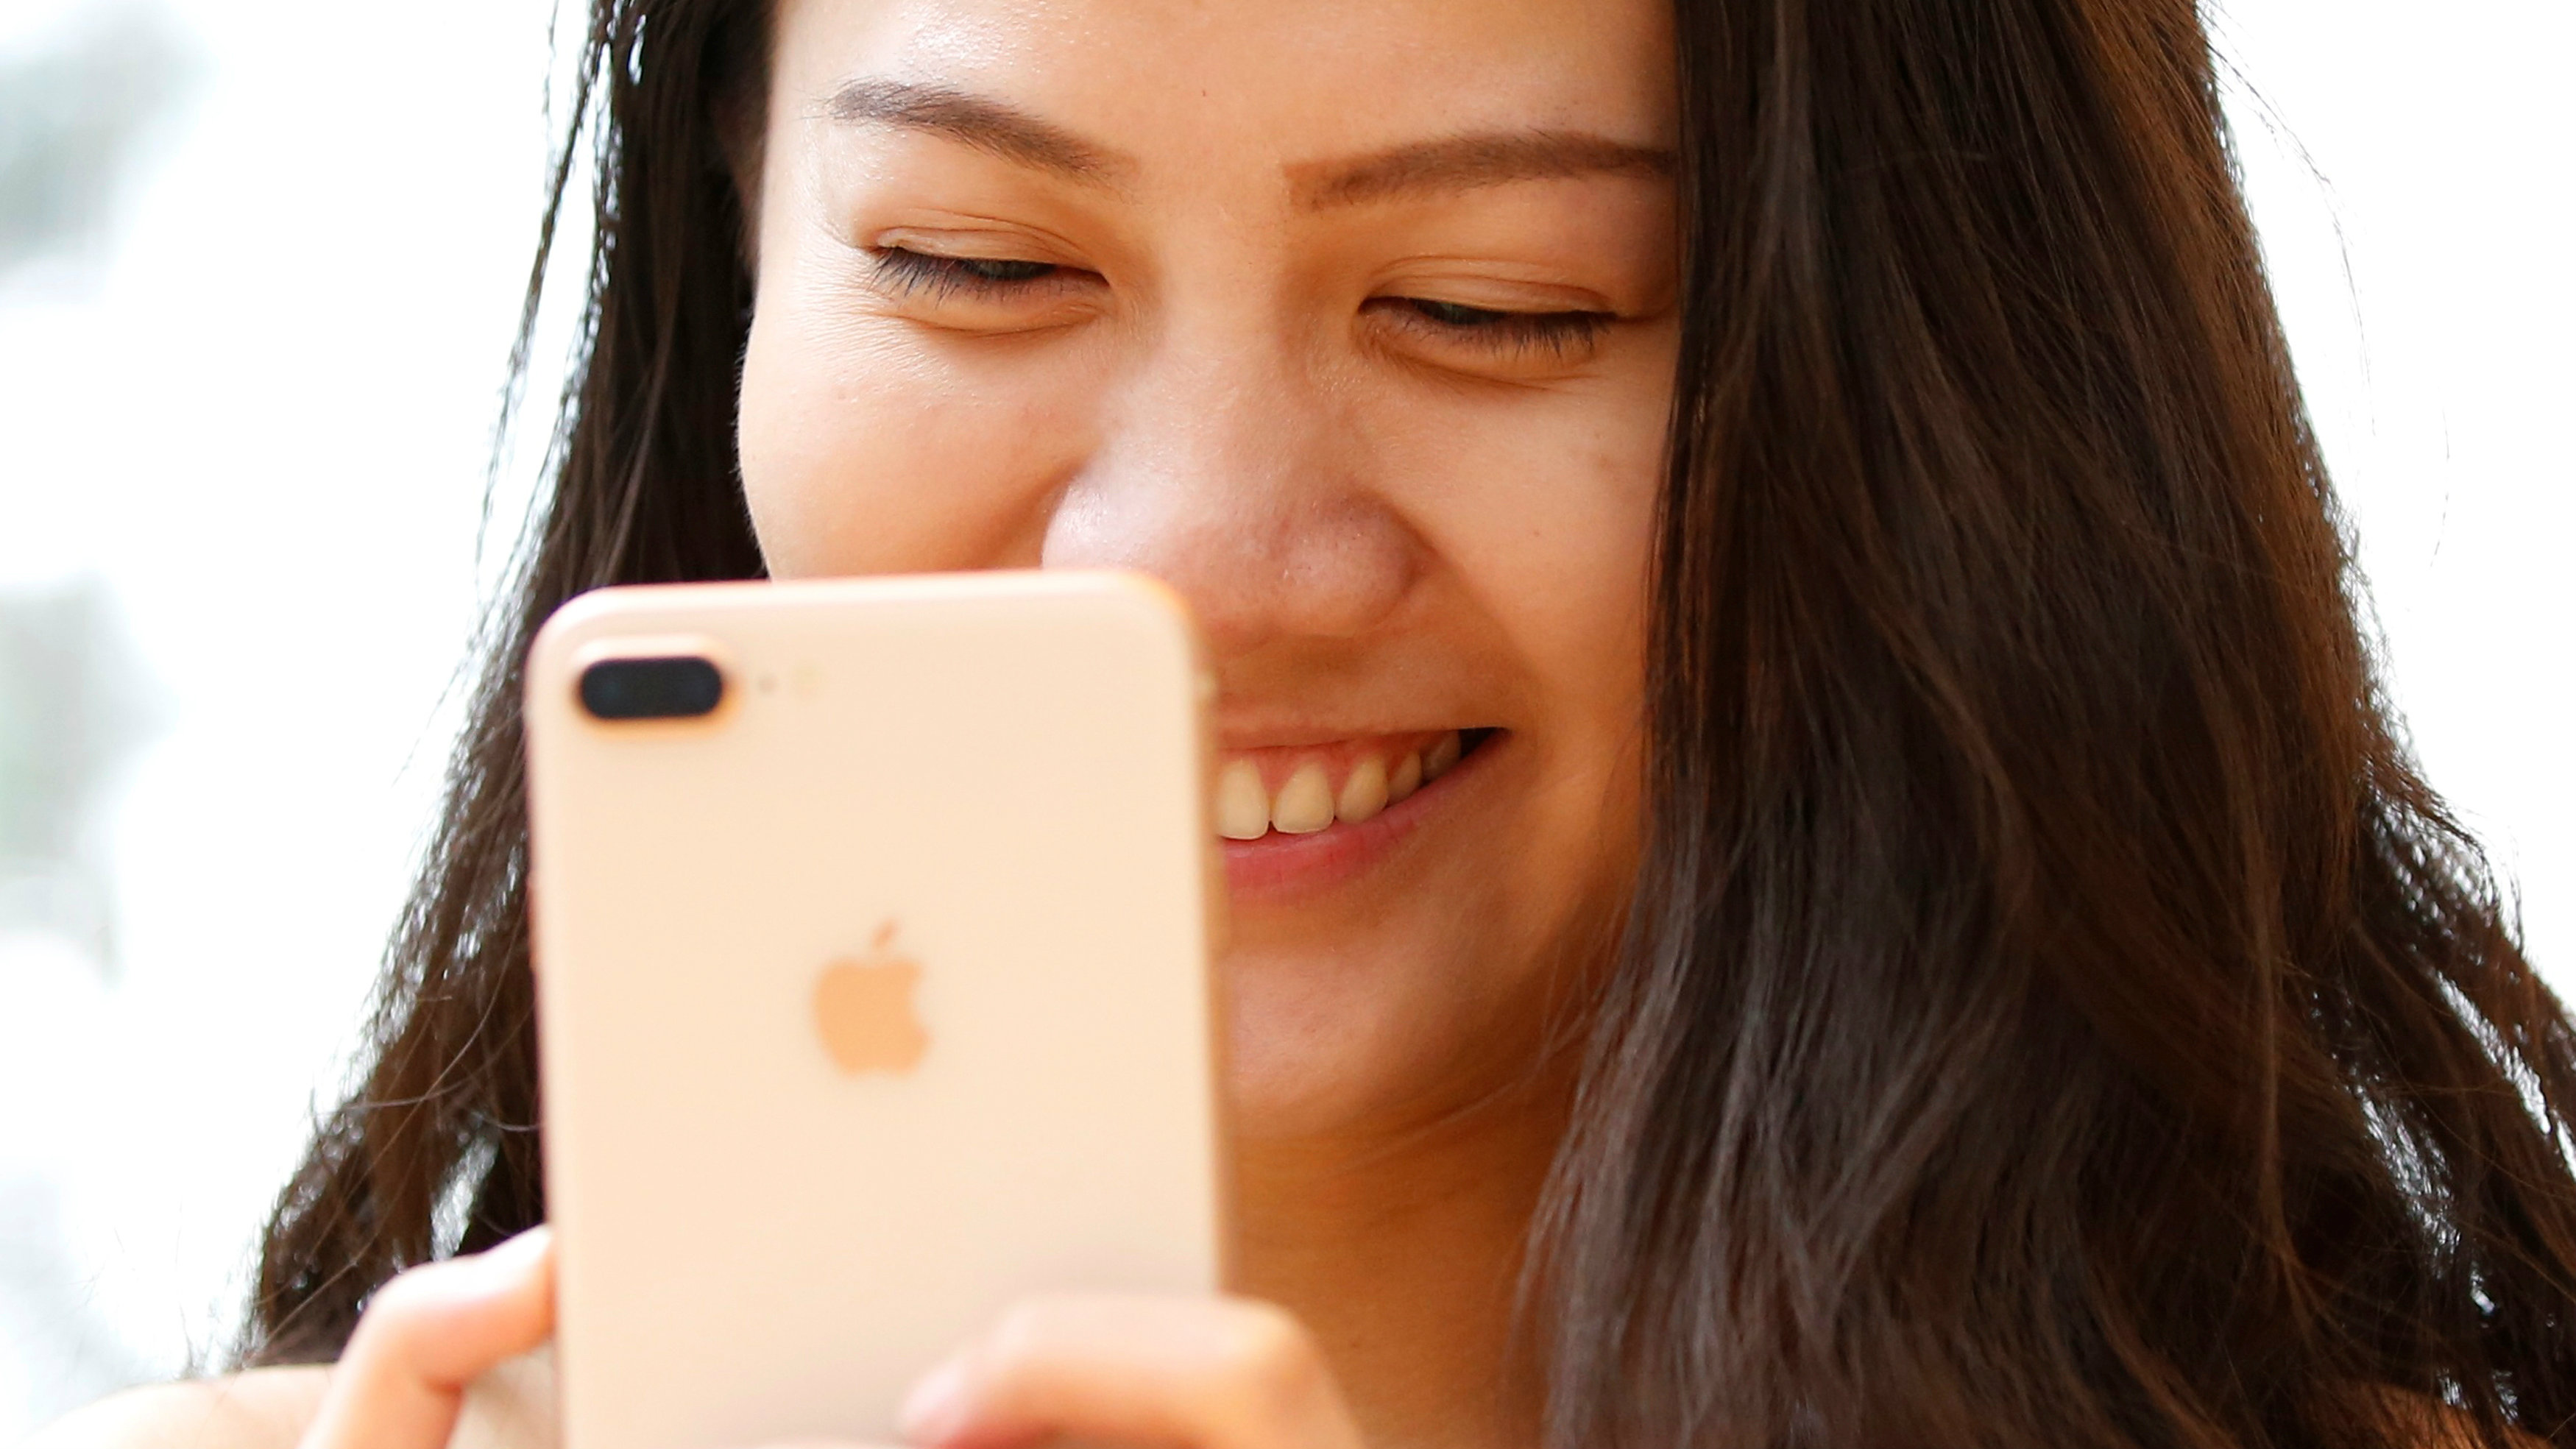 A woman holds Apple's new iPhone 8 Plus after it went on sale at the Apple Store in Tokyo's Omotesando shopping district, Japan, September 22, 2017.